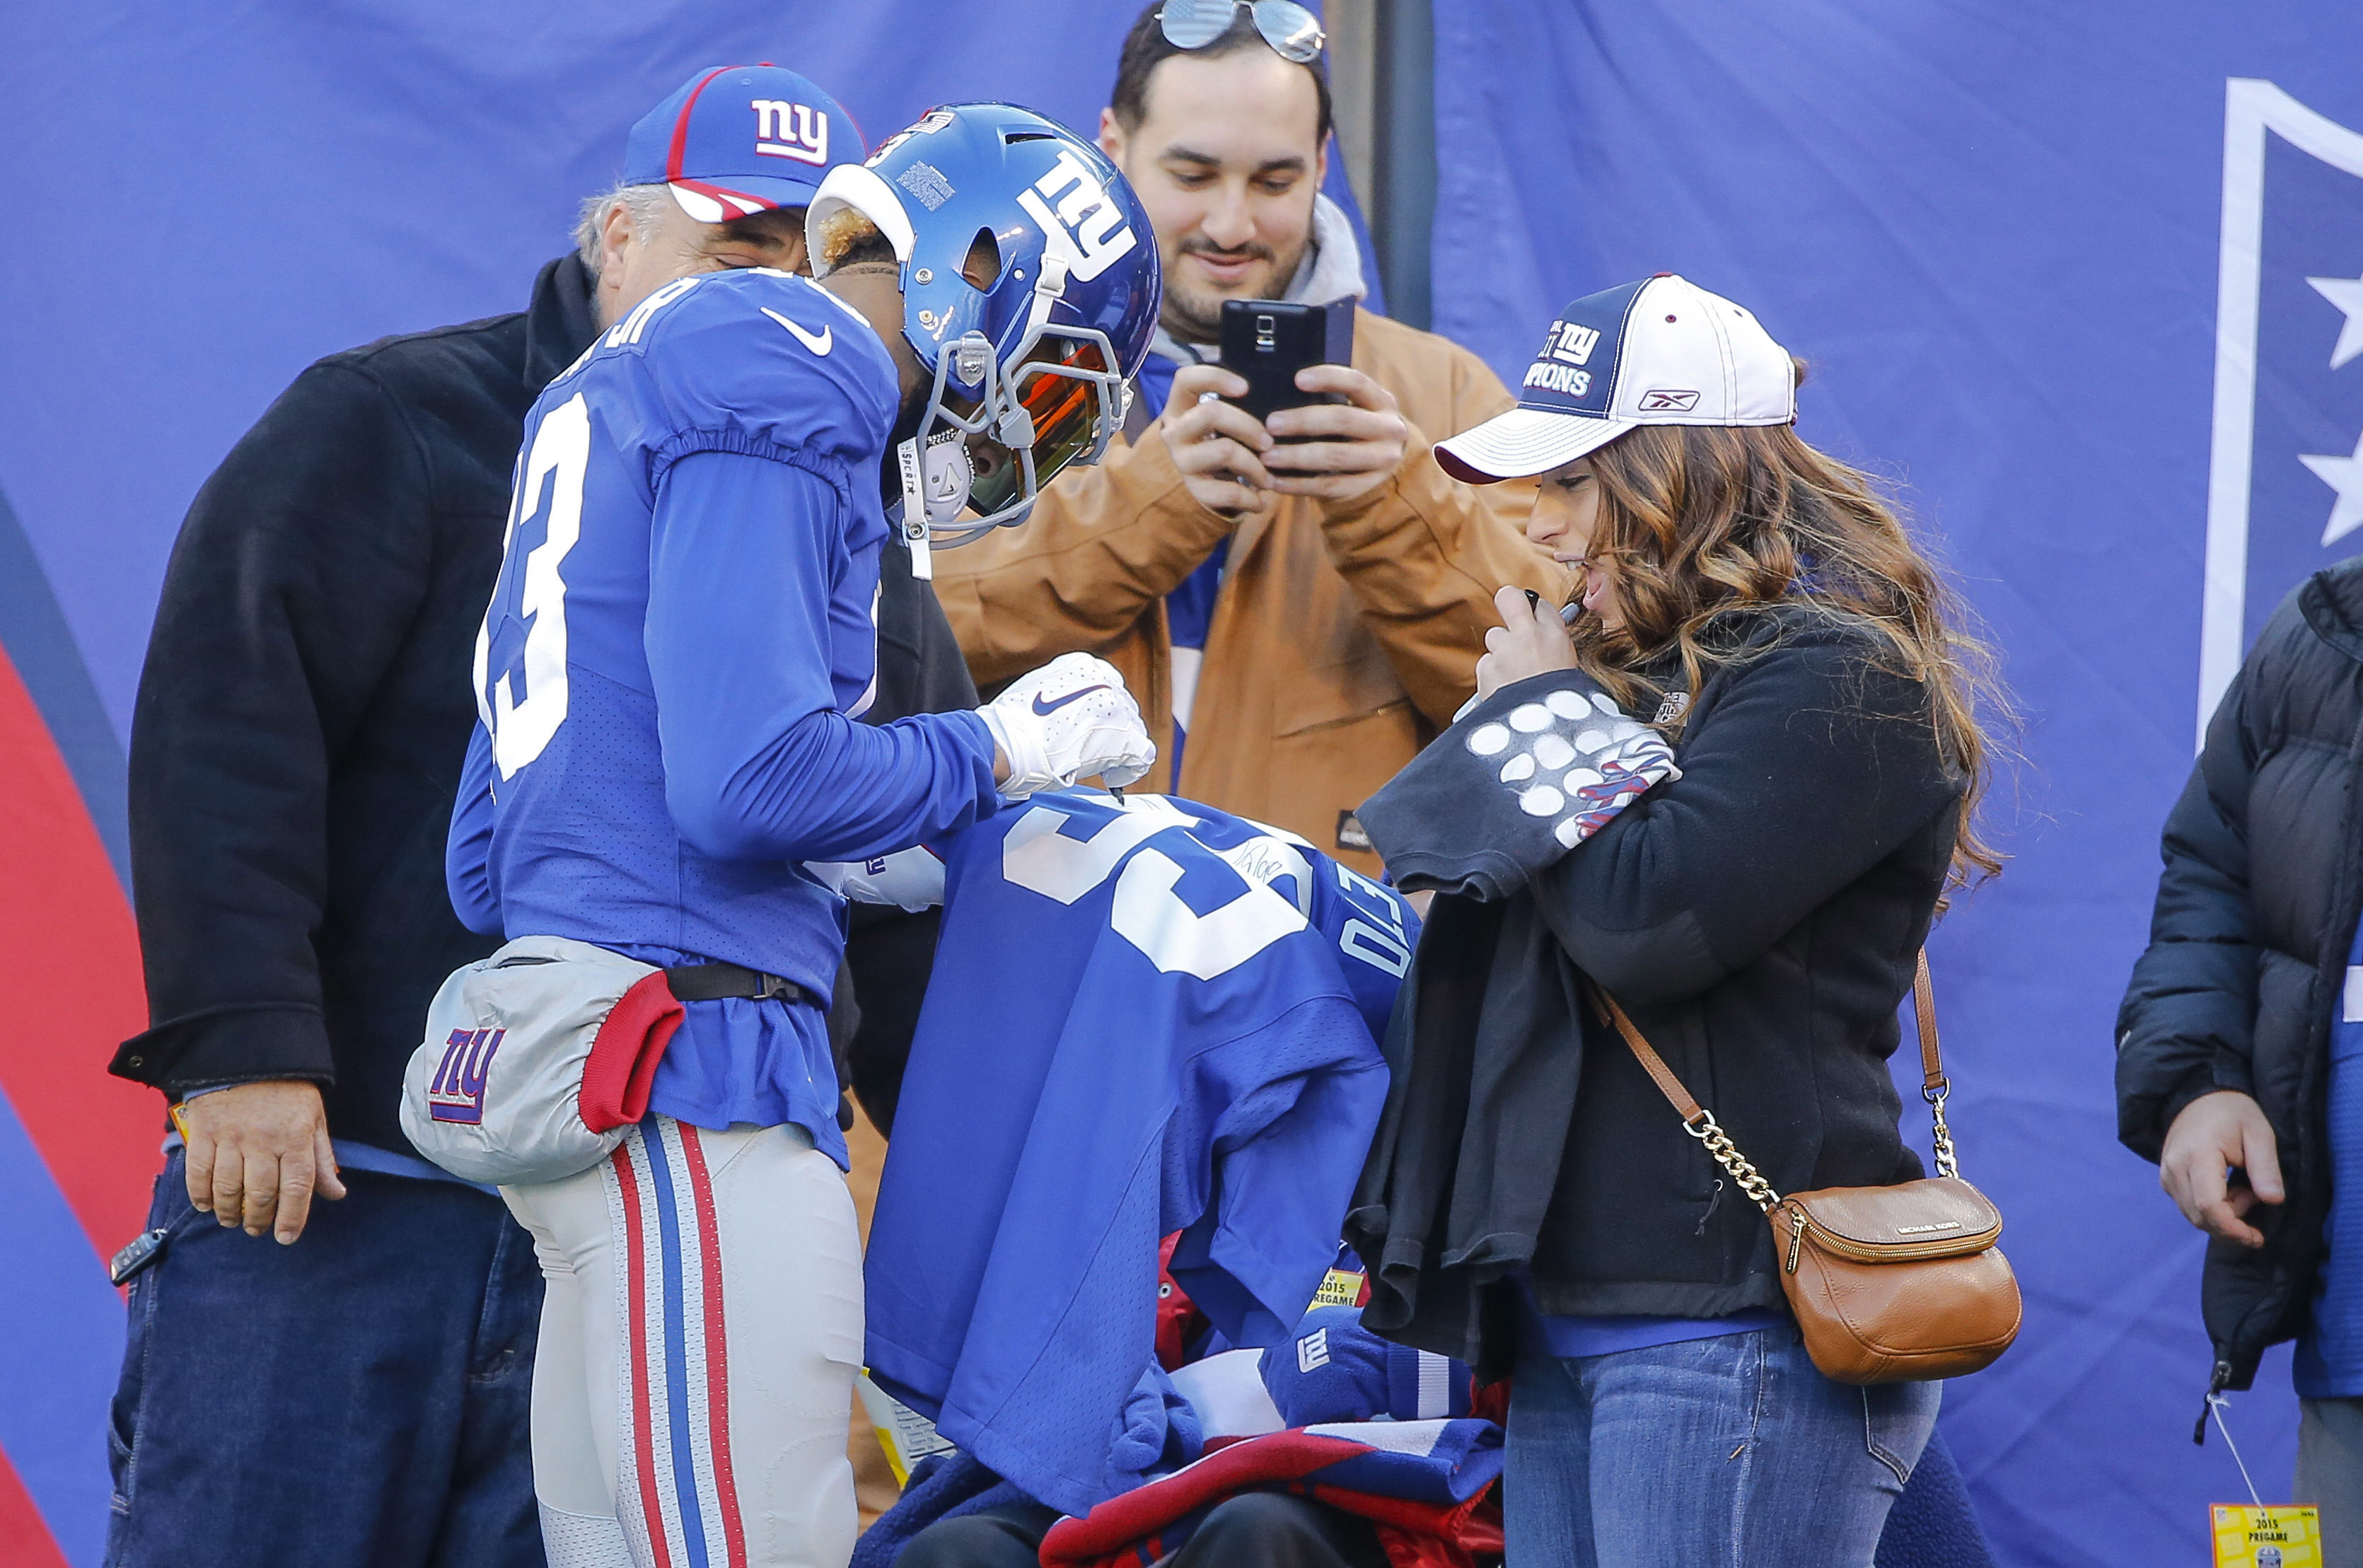 Odell Beckham Jr. signs autographs for fans before Sunday's game